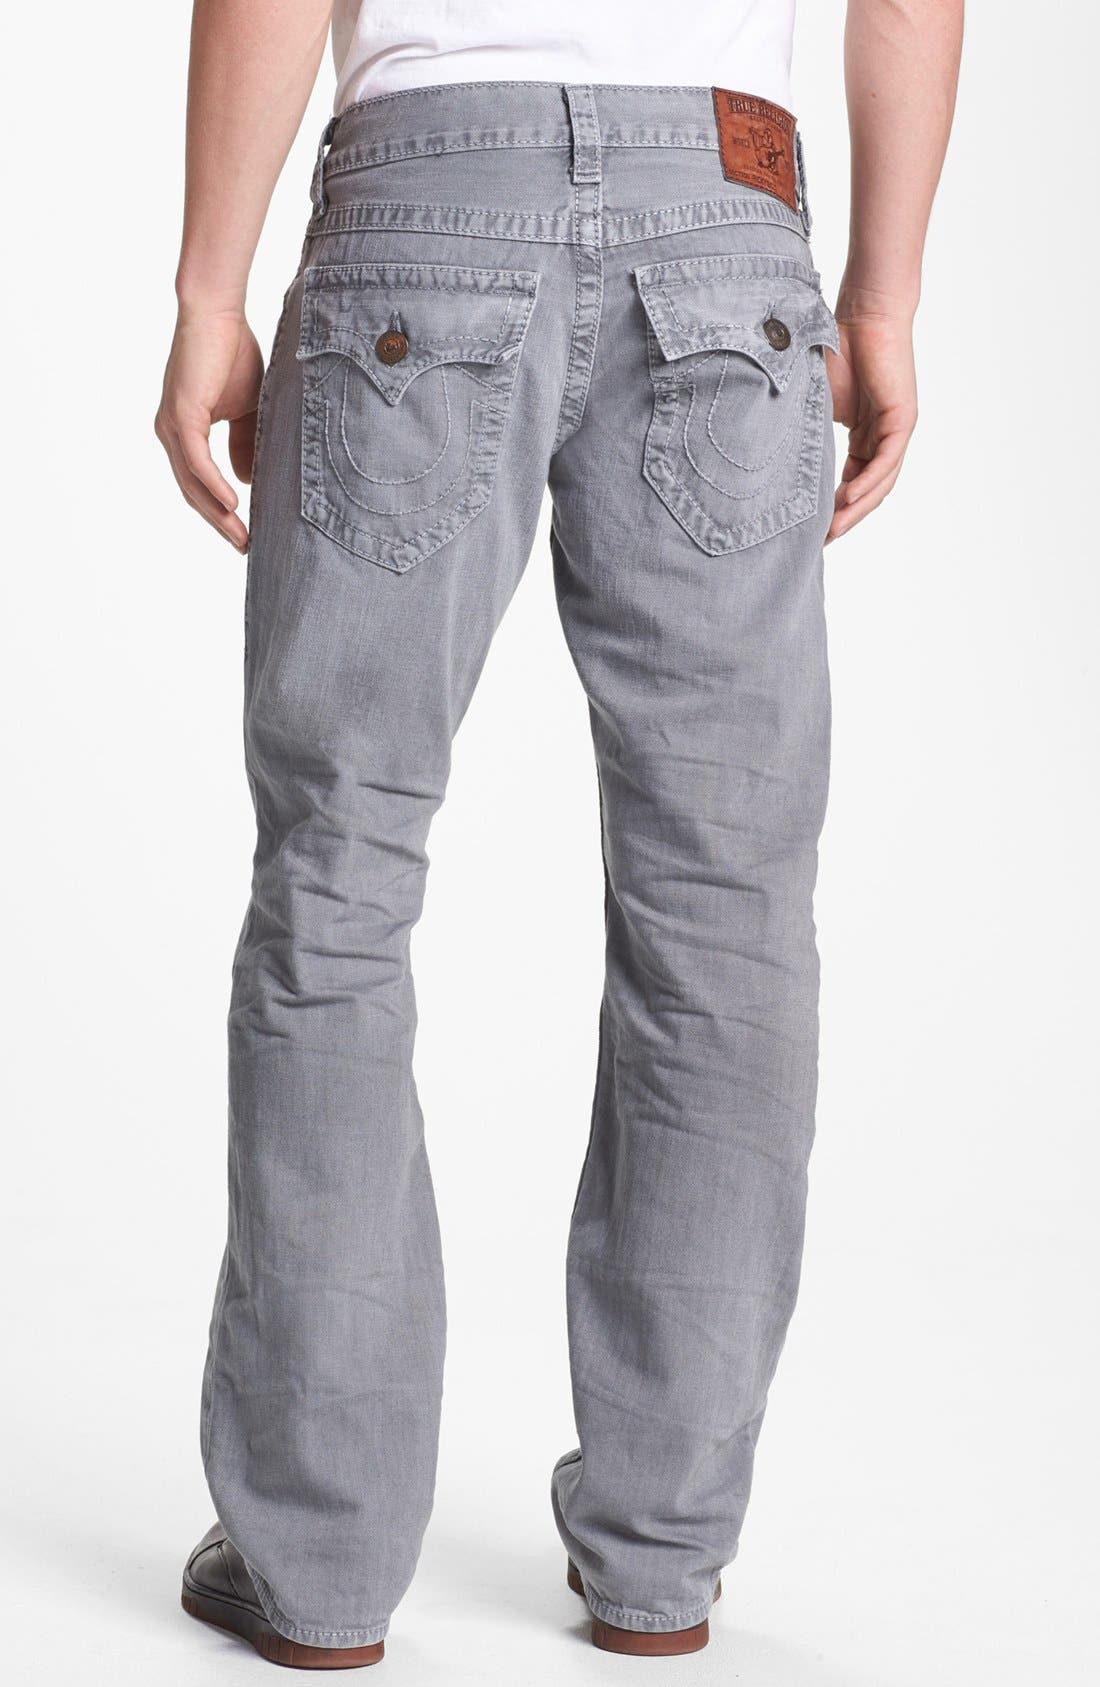 Alternate Image 1 Selected - True Religion Brand Jeans 'Ricky' Straight Leg Jeans (Assd Seal)